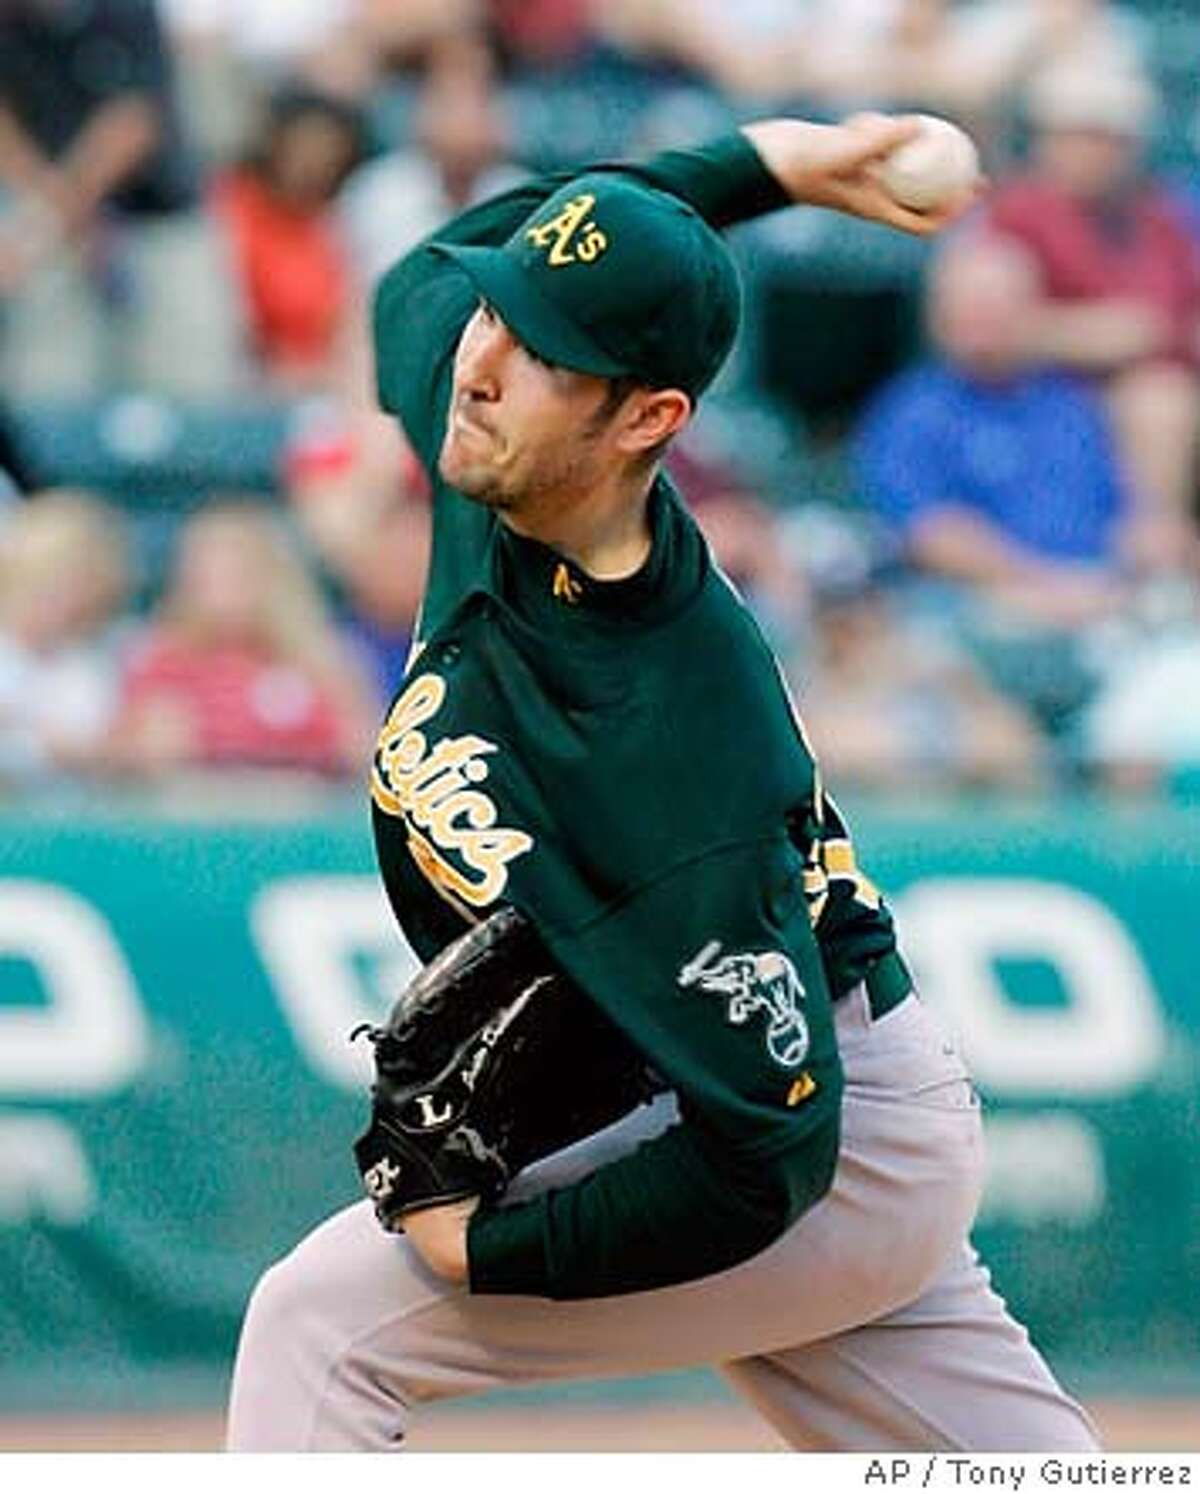 Oakland Athletics starting pitcher Justin Duchscherer delivers to the Texas Rangers in the first inning of a Major League baseball game, Friday, May 30, 2008, in Arlington, Texas. (AP Photo/Tony Gutierrez)